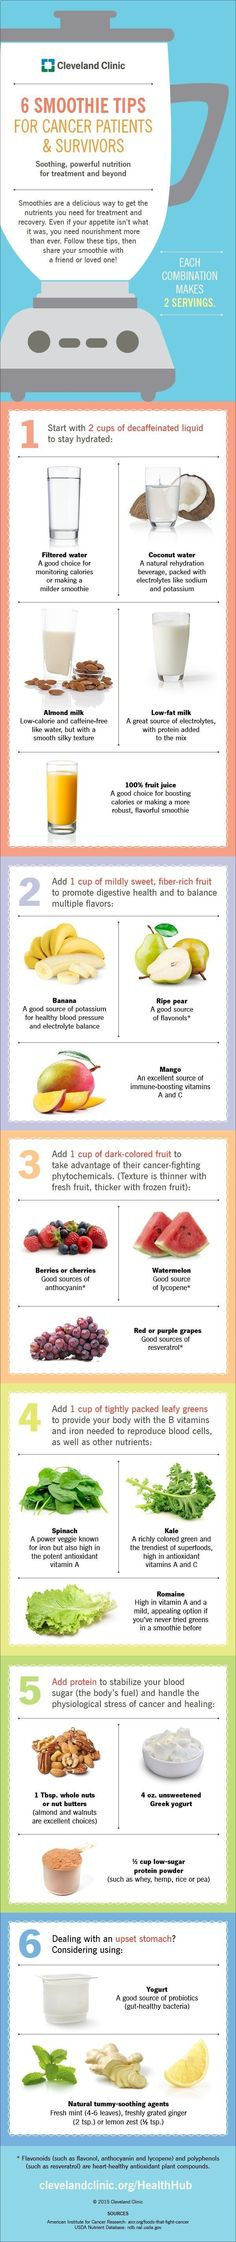 USEFUL MATERIAL: Just For U ♥♥ 6 tips for Smoothies for #cancer patients and survivors. #recipes #infographic #breastcancerinfographic